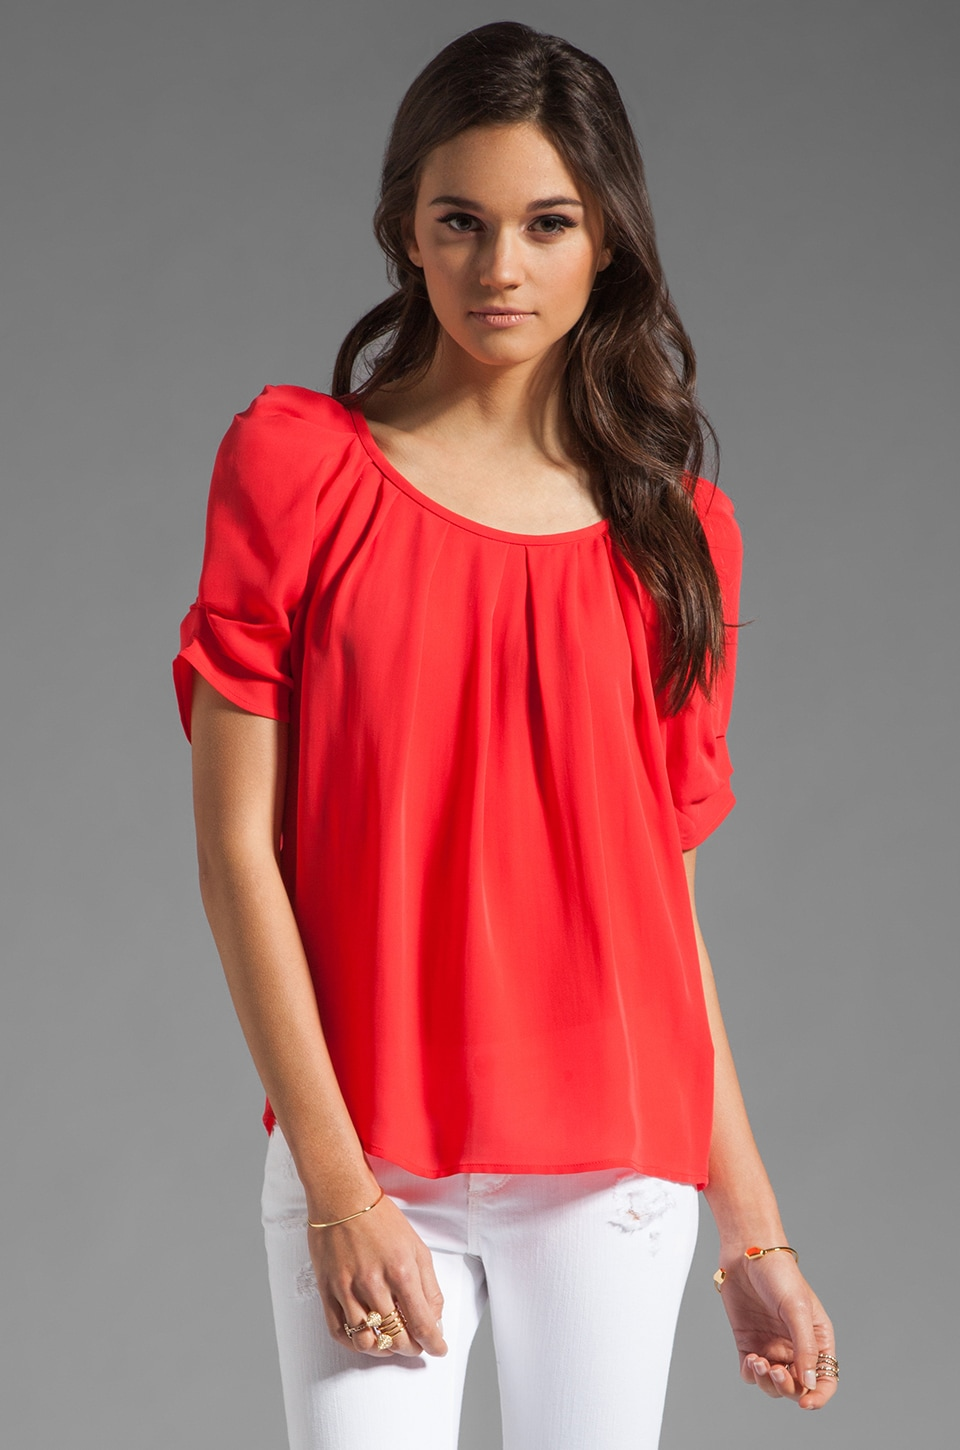 Joie Eleanor Top in Cherry